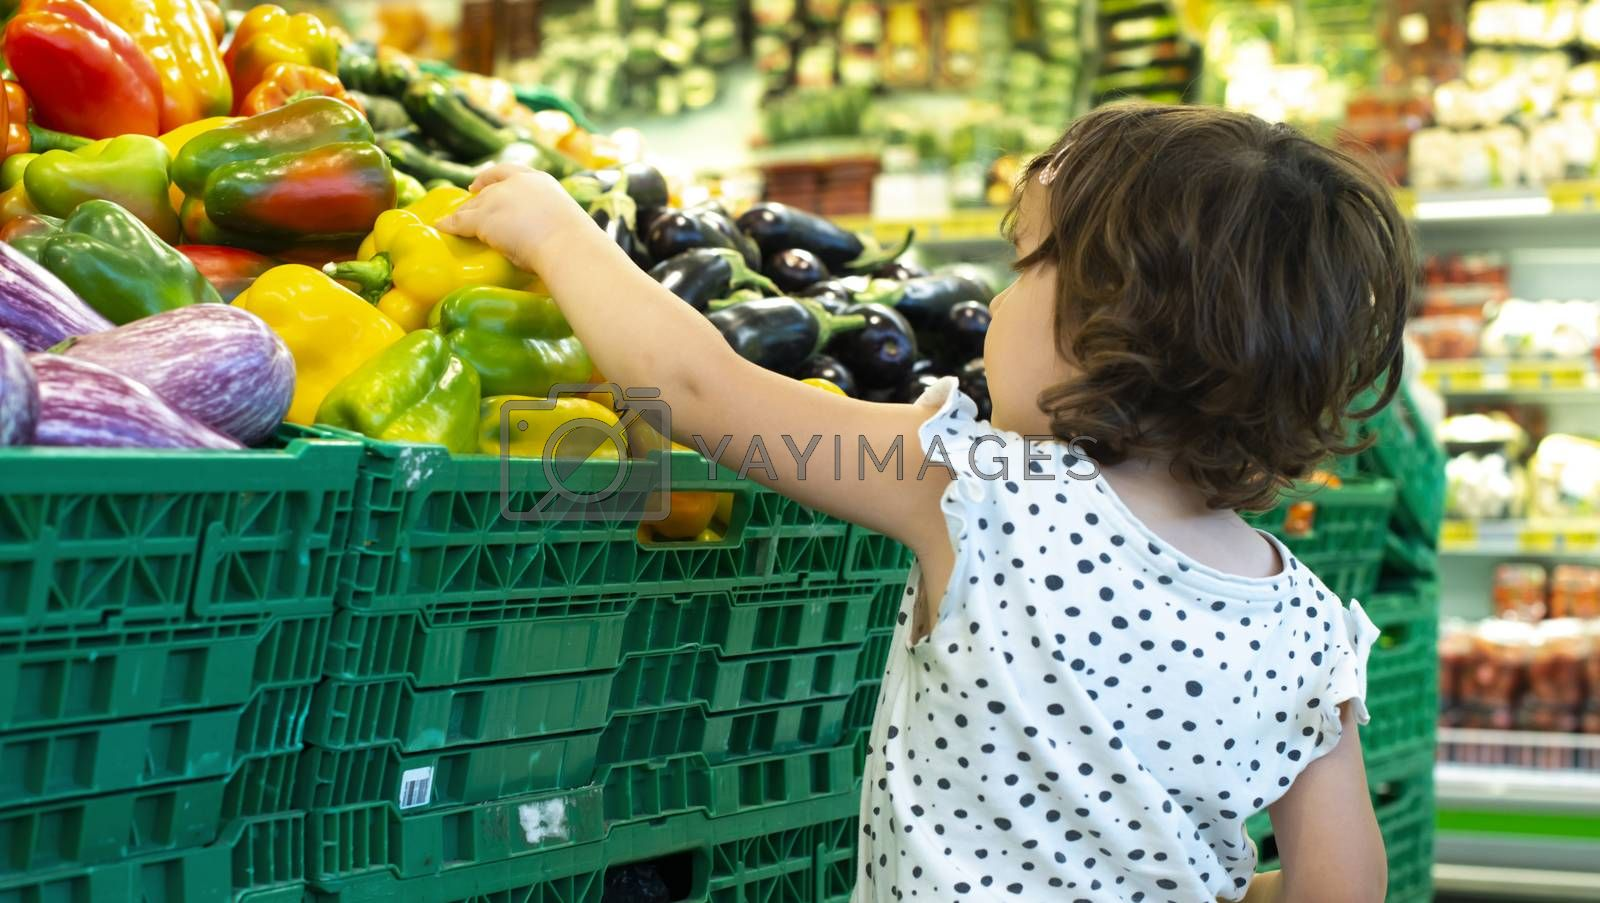 Child shopping peppers in supermarket. Concept for buying fruits and vegetables in hypermarket. Little girl hold shopping basket.